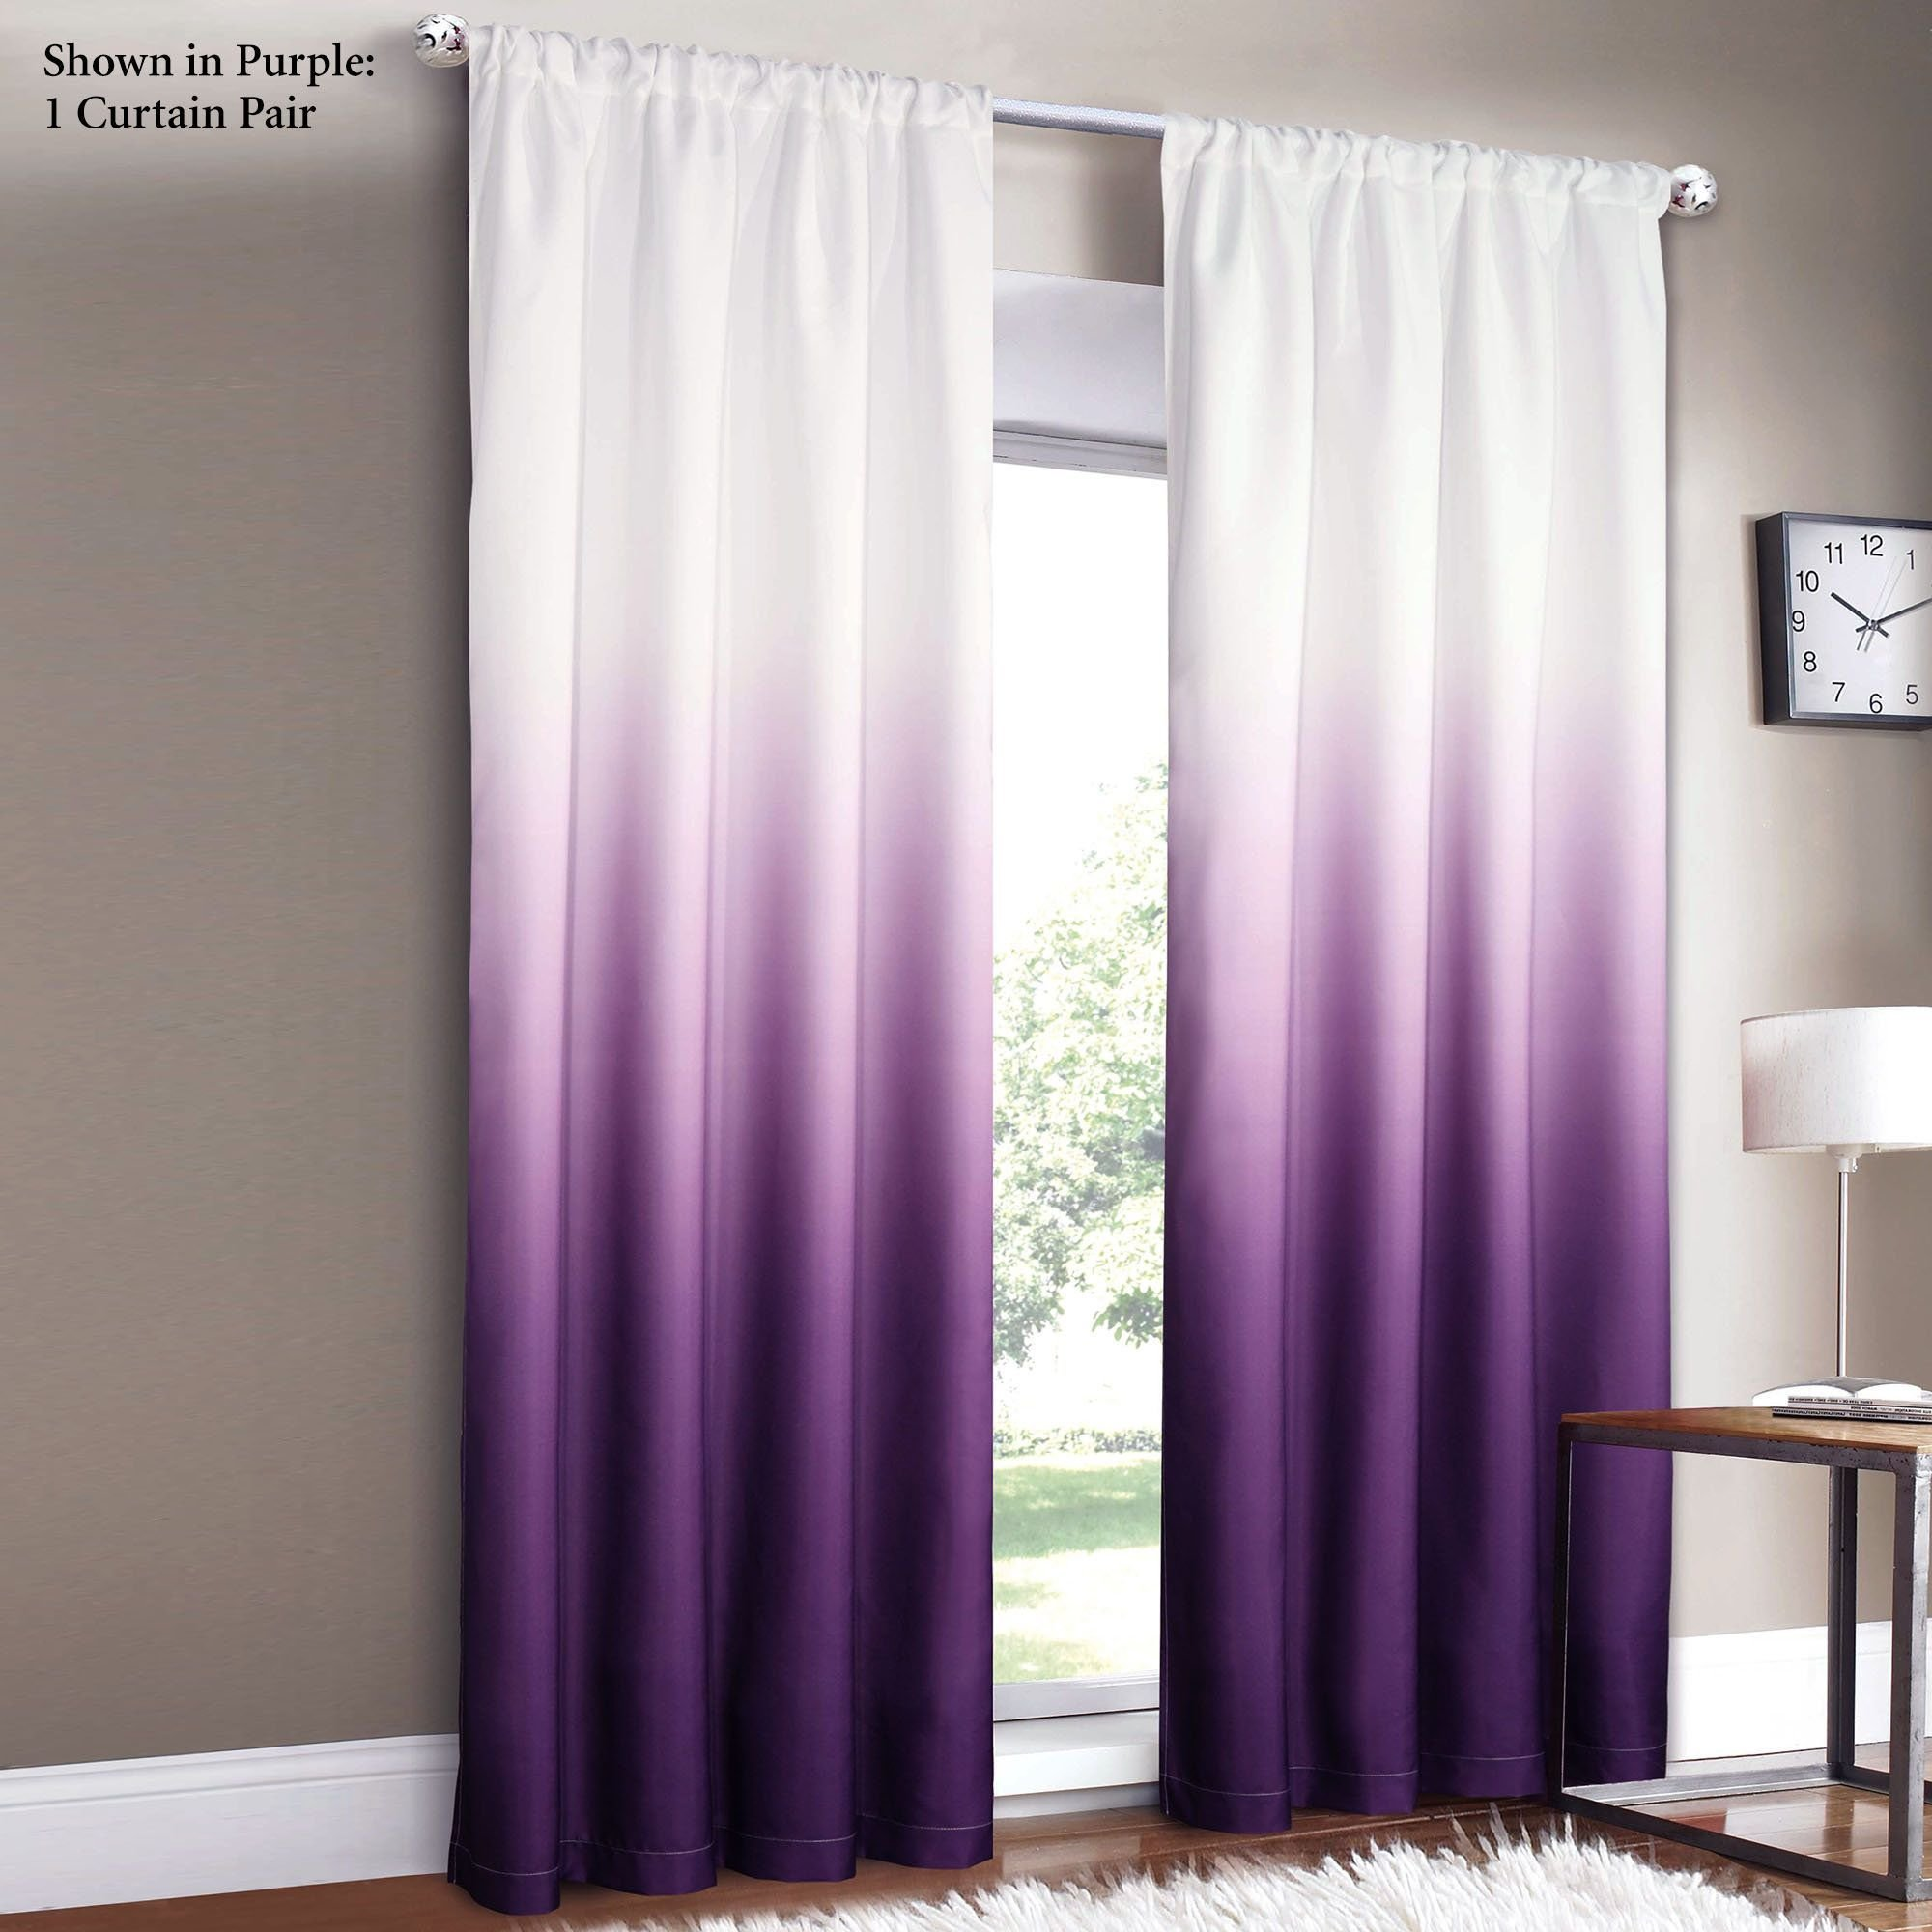 Best Shades Ombre Curtains My Dream House Ombre Curtains With Pictures